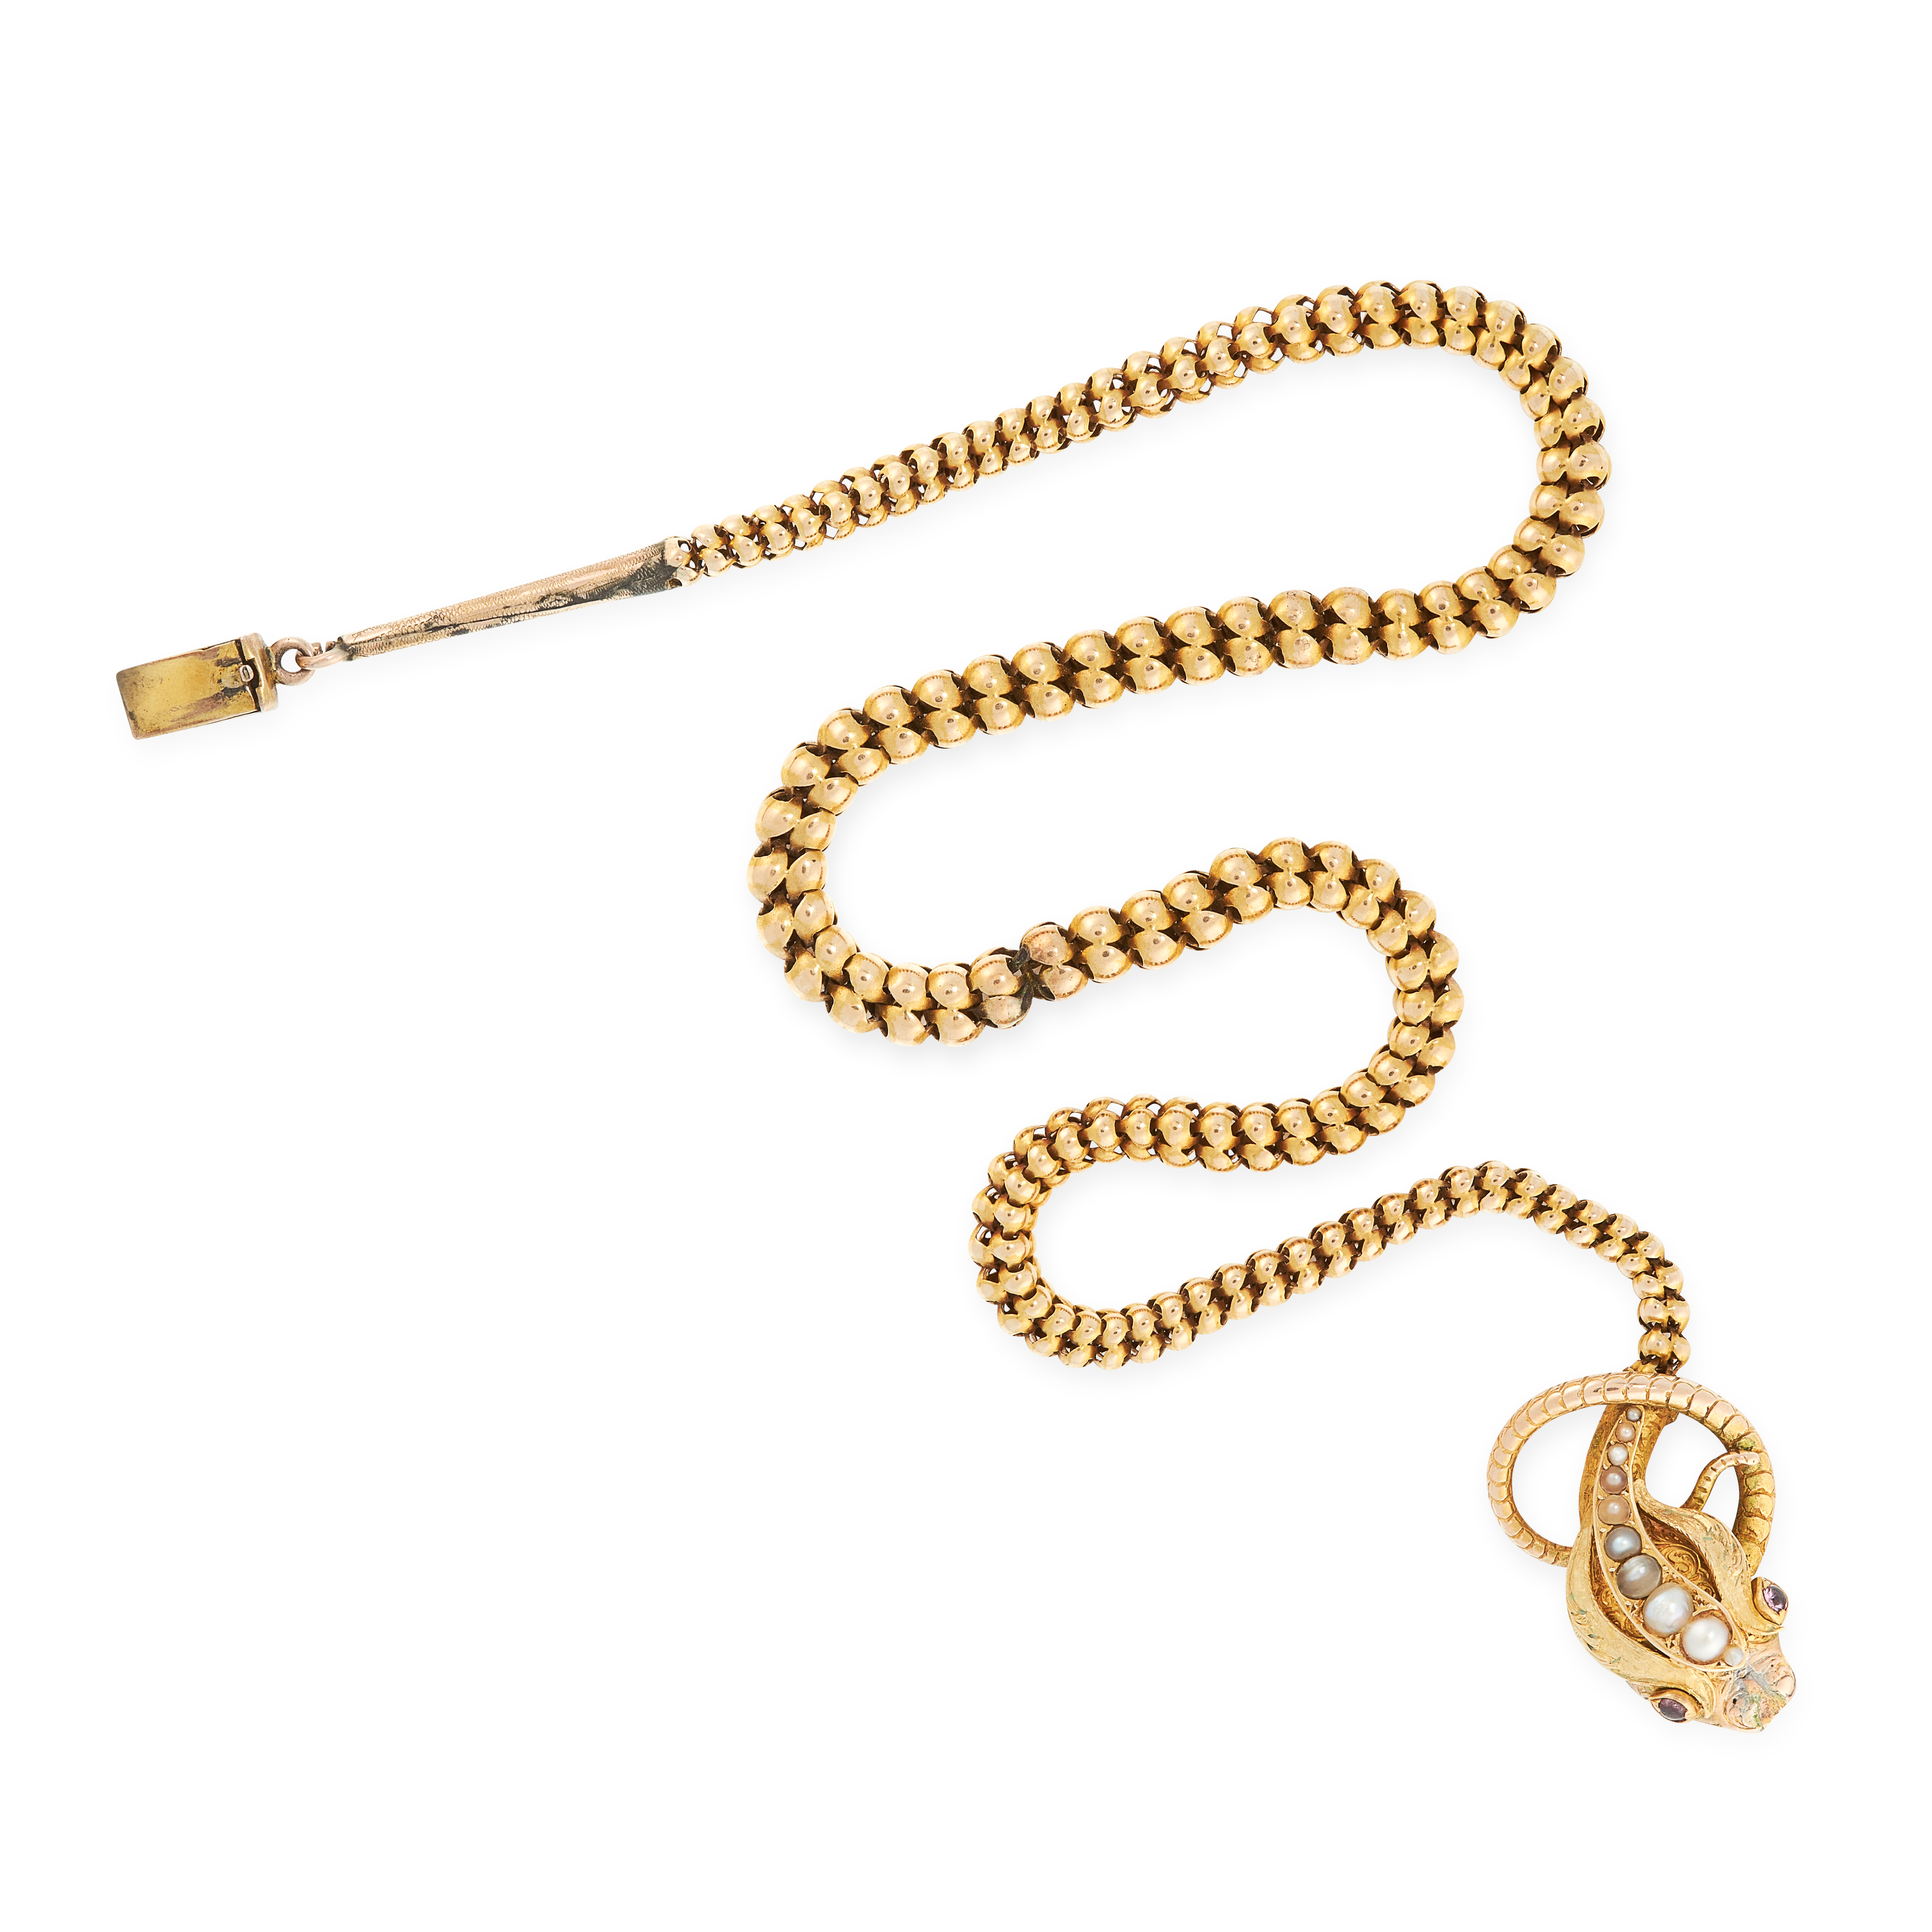 AN ANTIQUE GARNET AND PEARL SNAKE NECKLACE, 19TH CENTURY in yellow gold, designed as the body of a